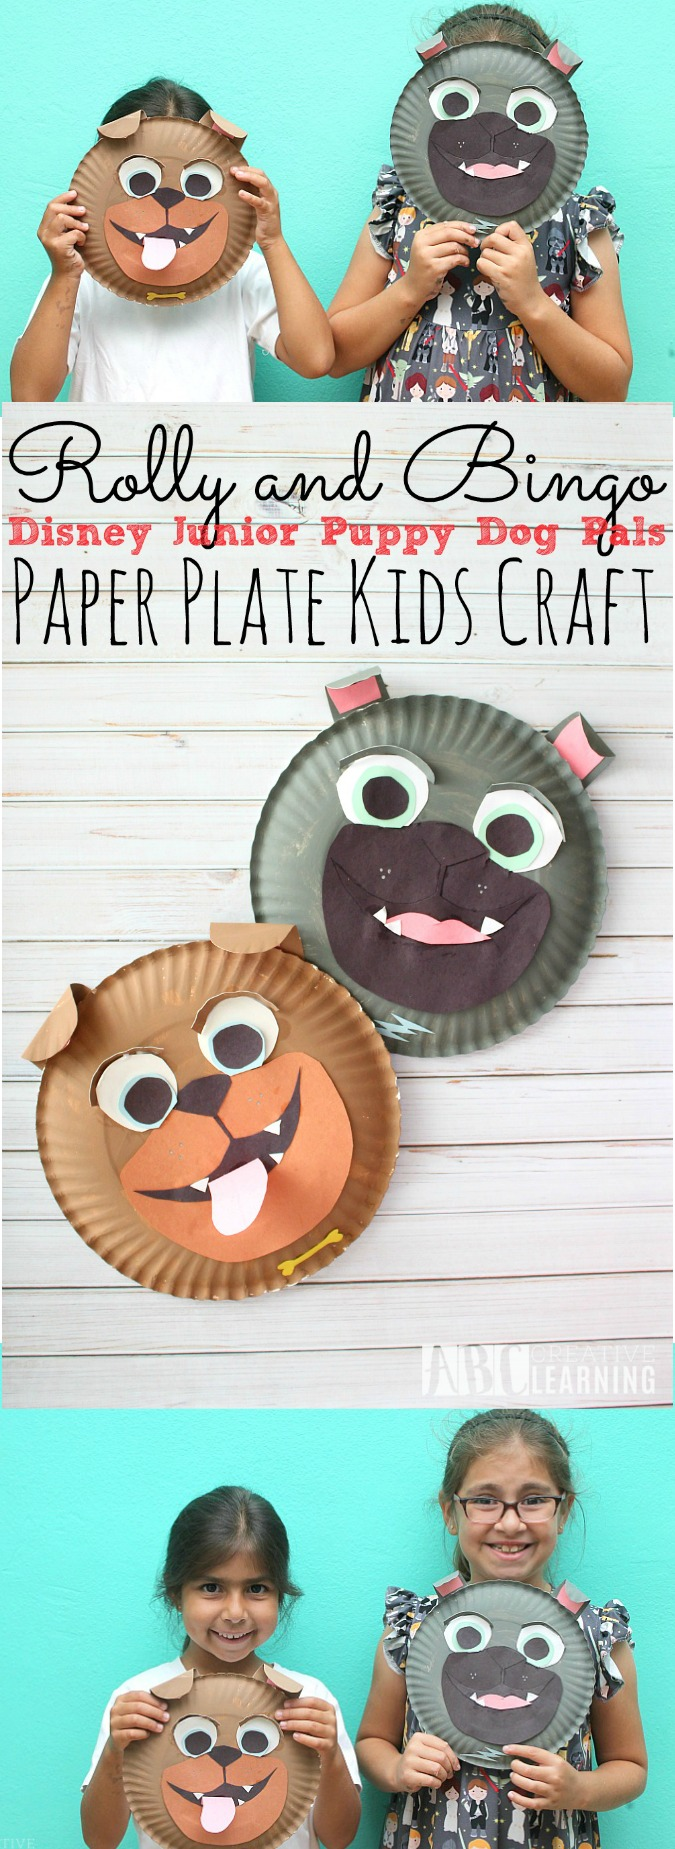 Rolly and Bingo Paper Plate Kids Crafts Inspired by Disney Junior Puppy Dog Pals